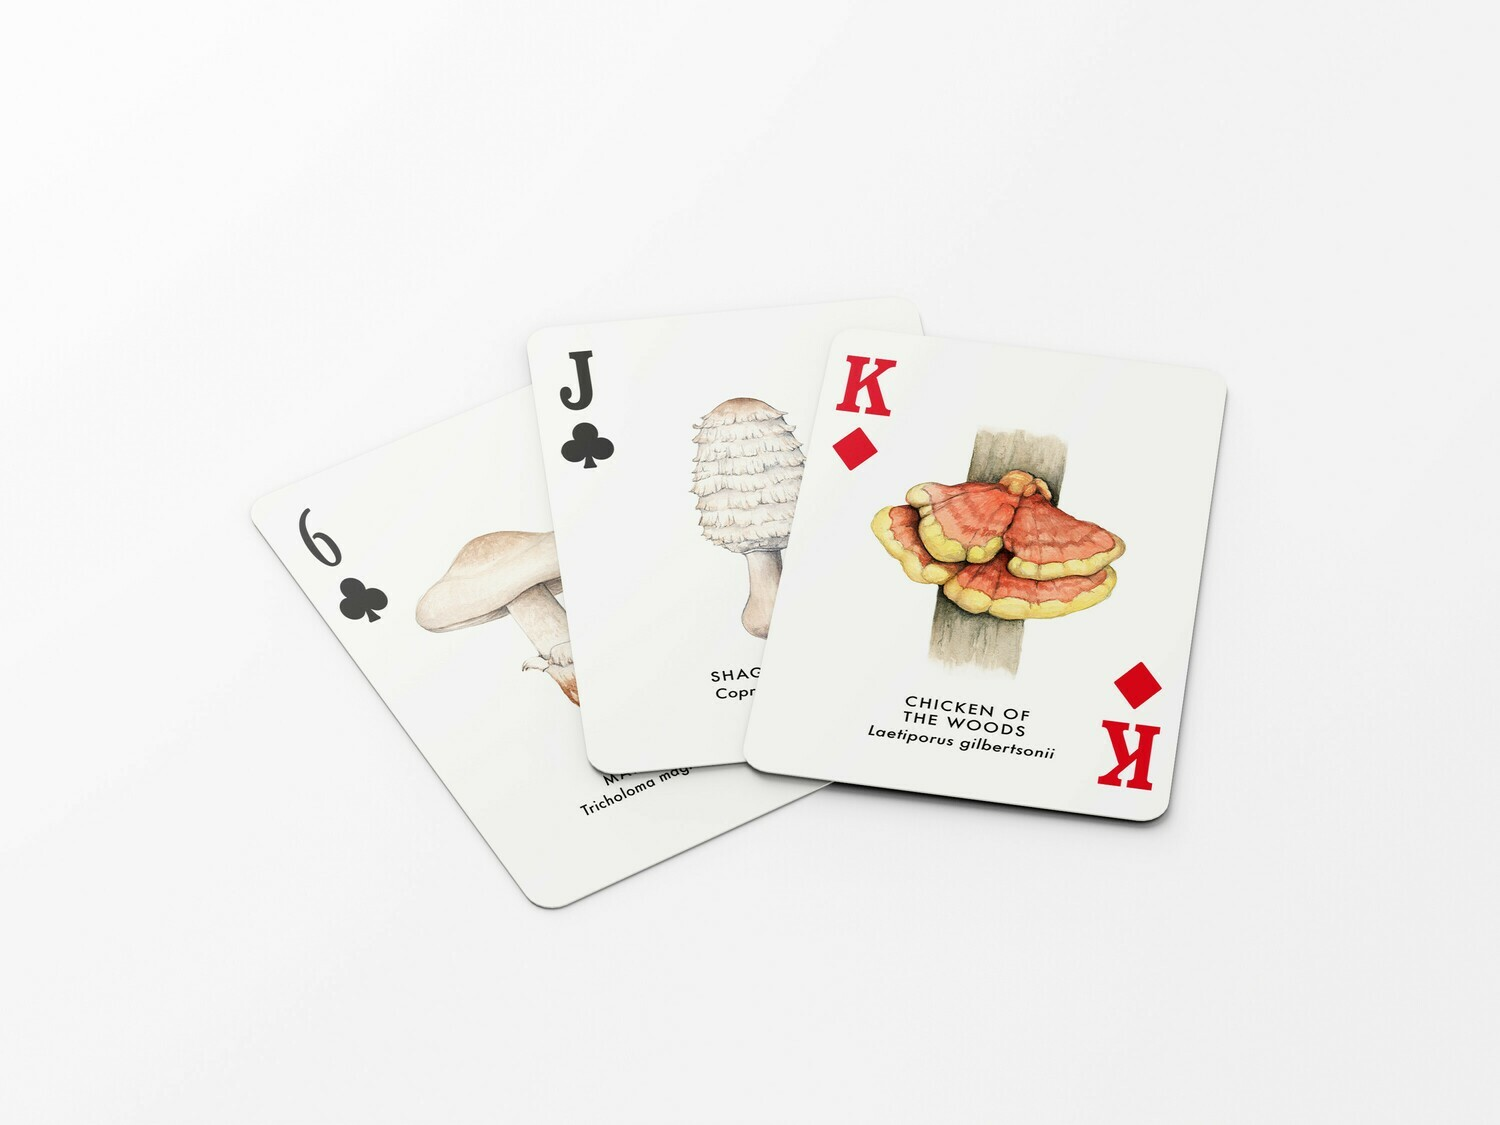 The North American mushrooms playing cards deck